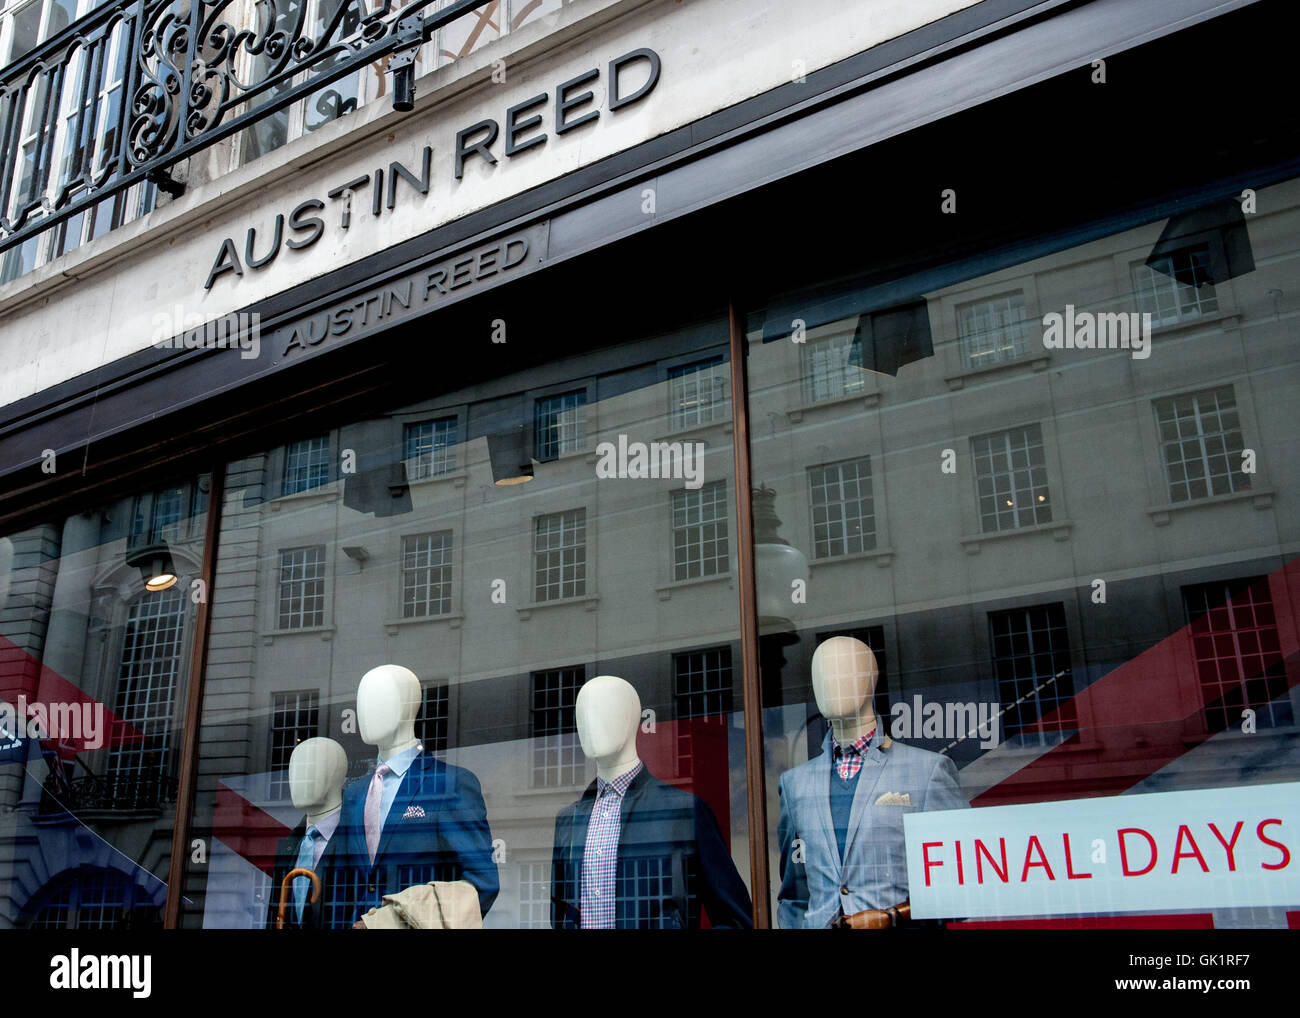 Austin Reed Goes Into Administration Putting Thousands Of Jobs At Stock Photo Alamy